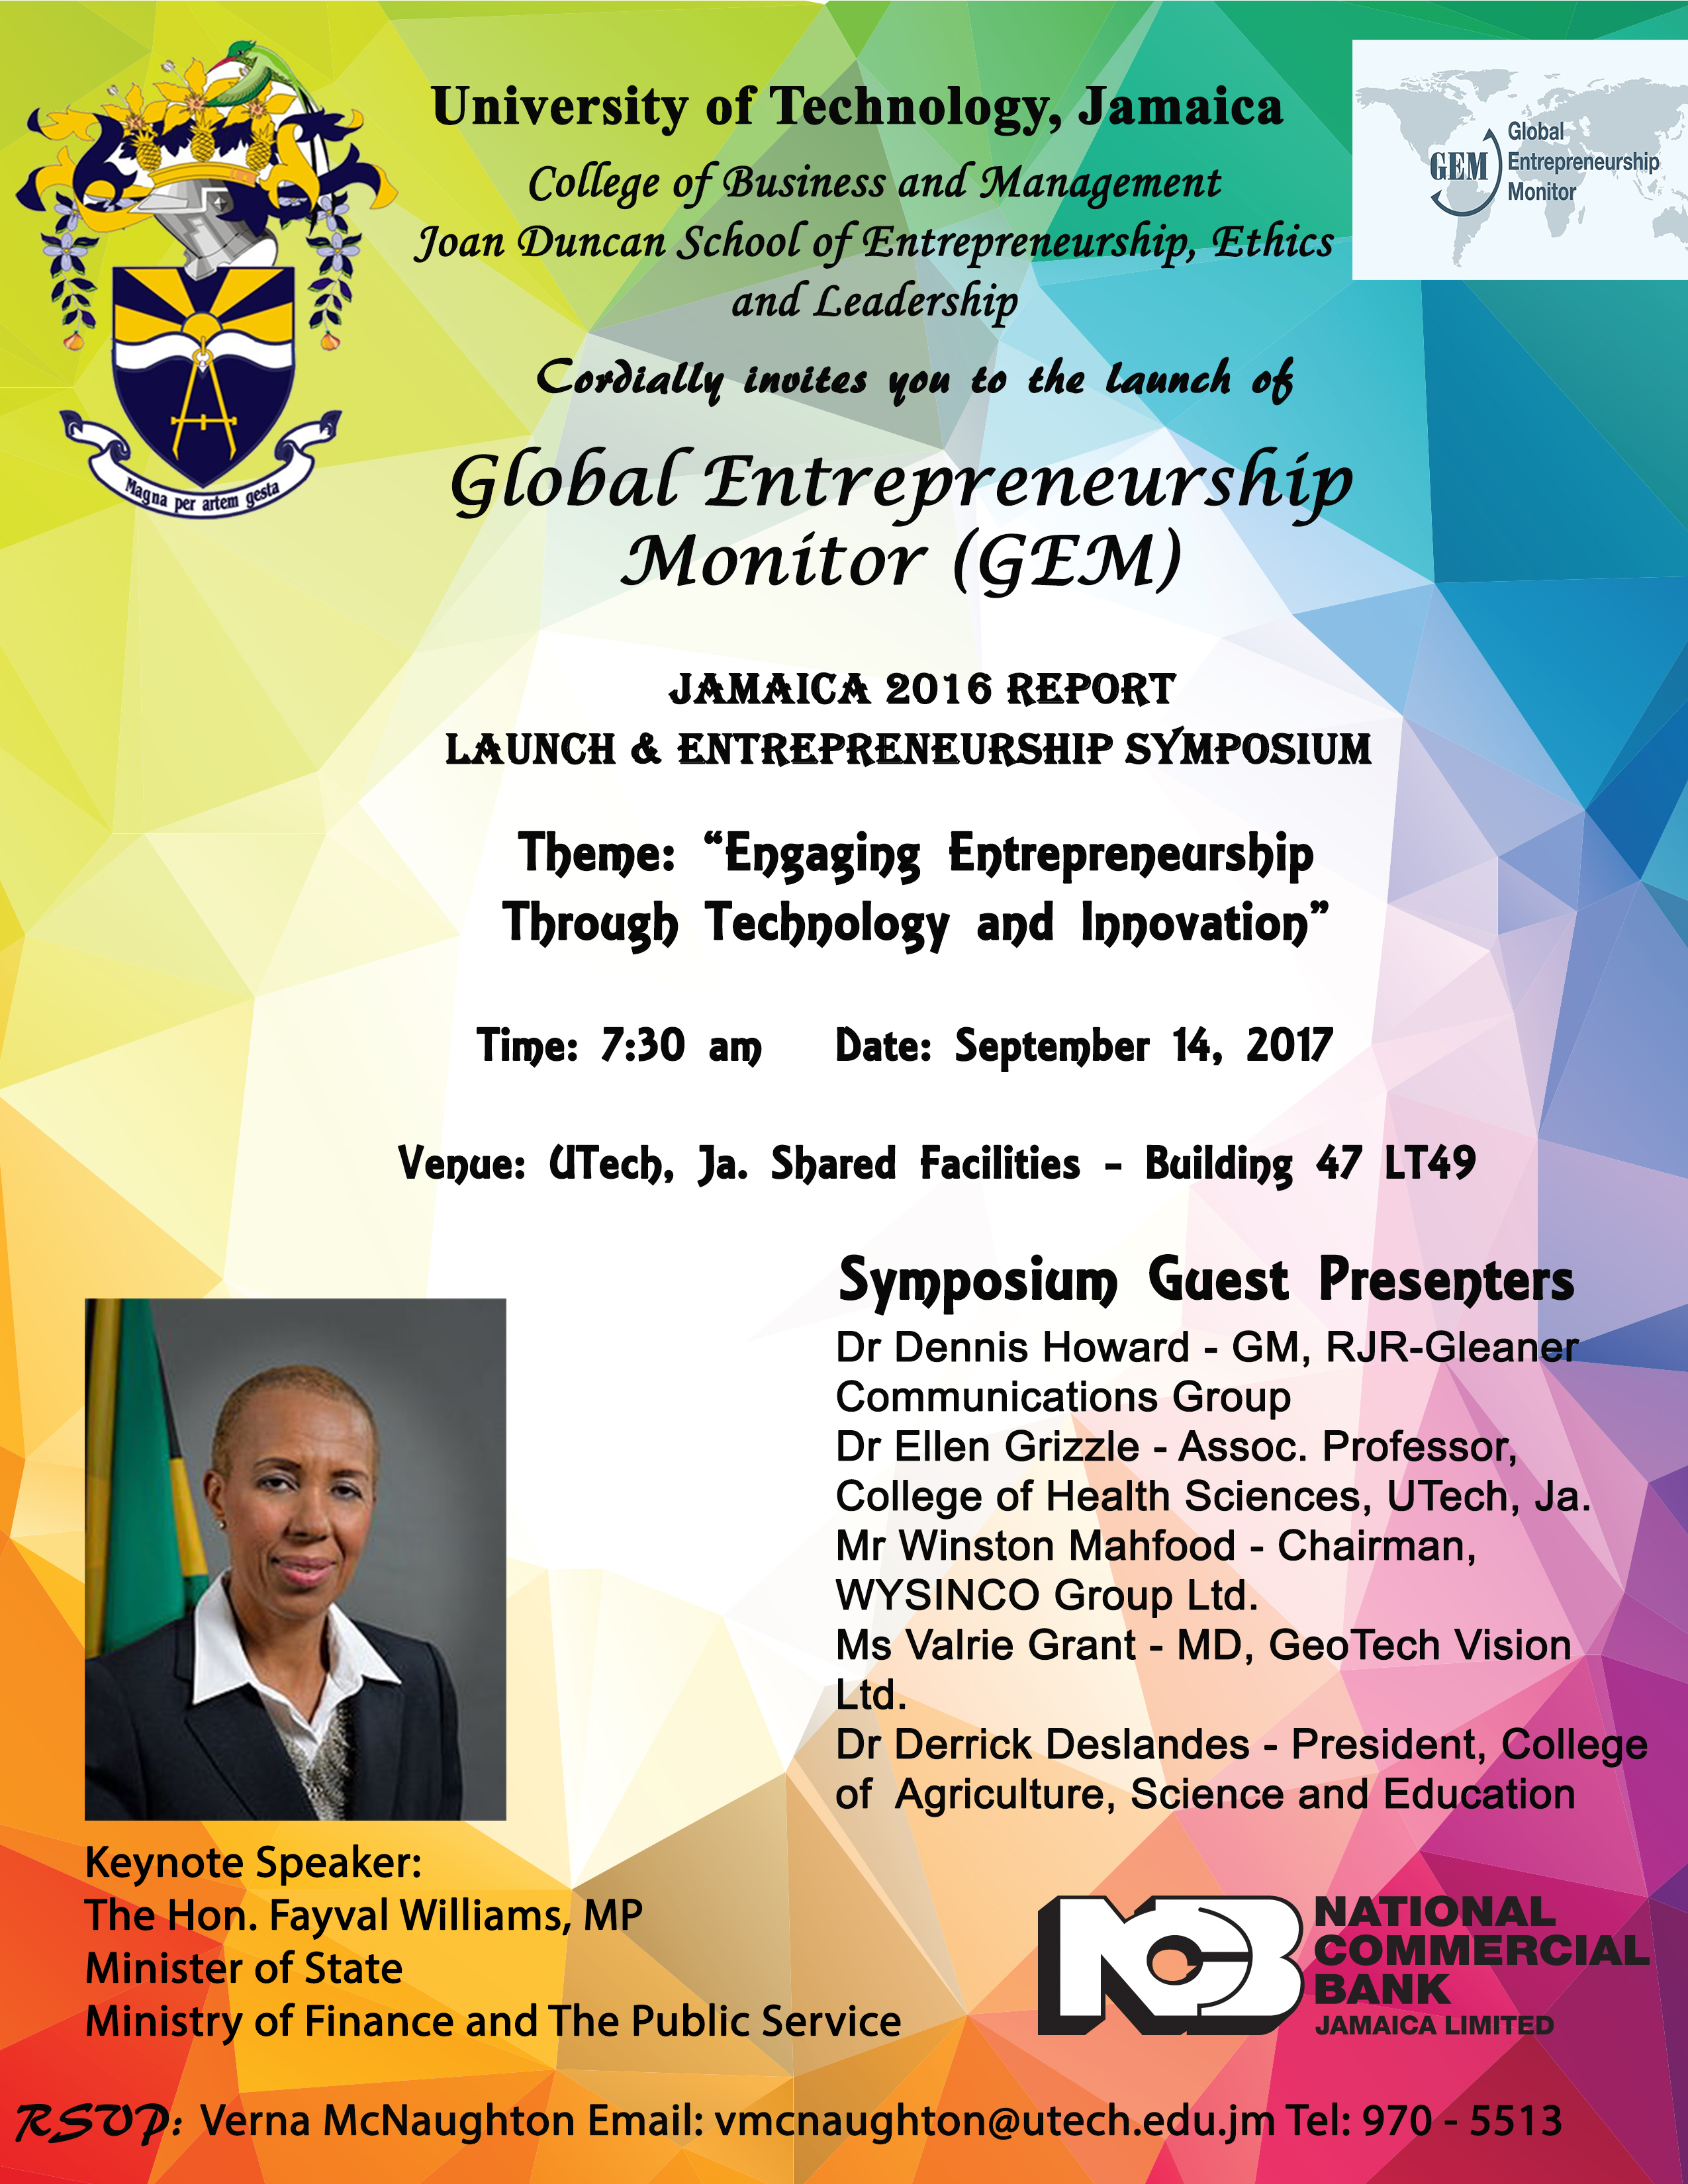 UTech, Jamaica Launches Global Entrepreneurship Monitor (GEM) Jamaica 2016 Report